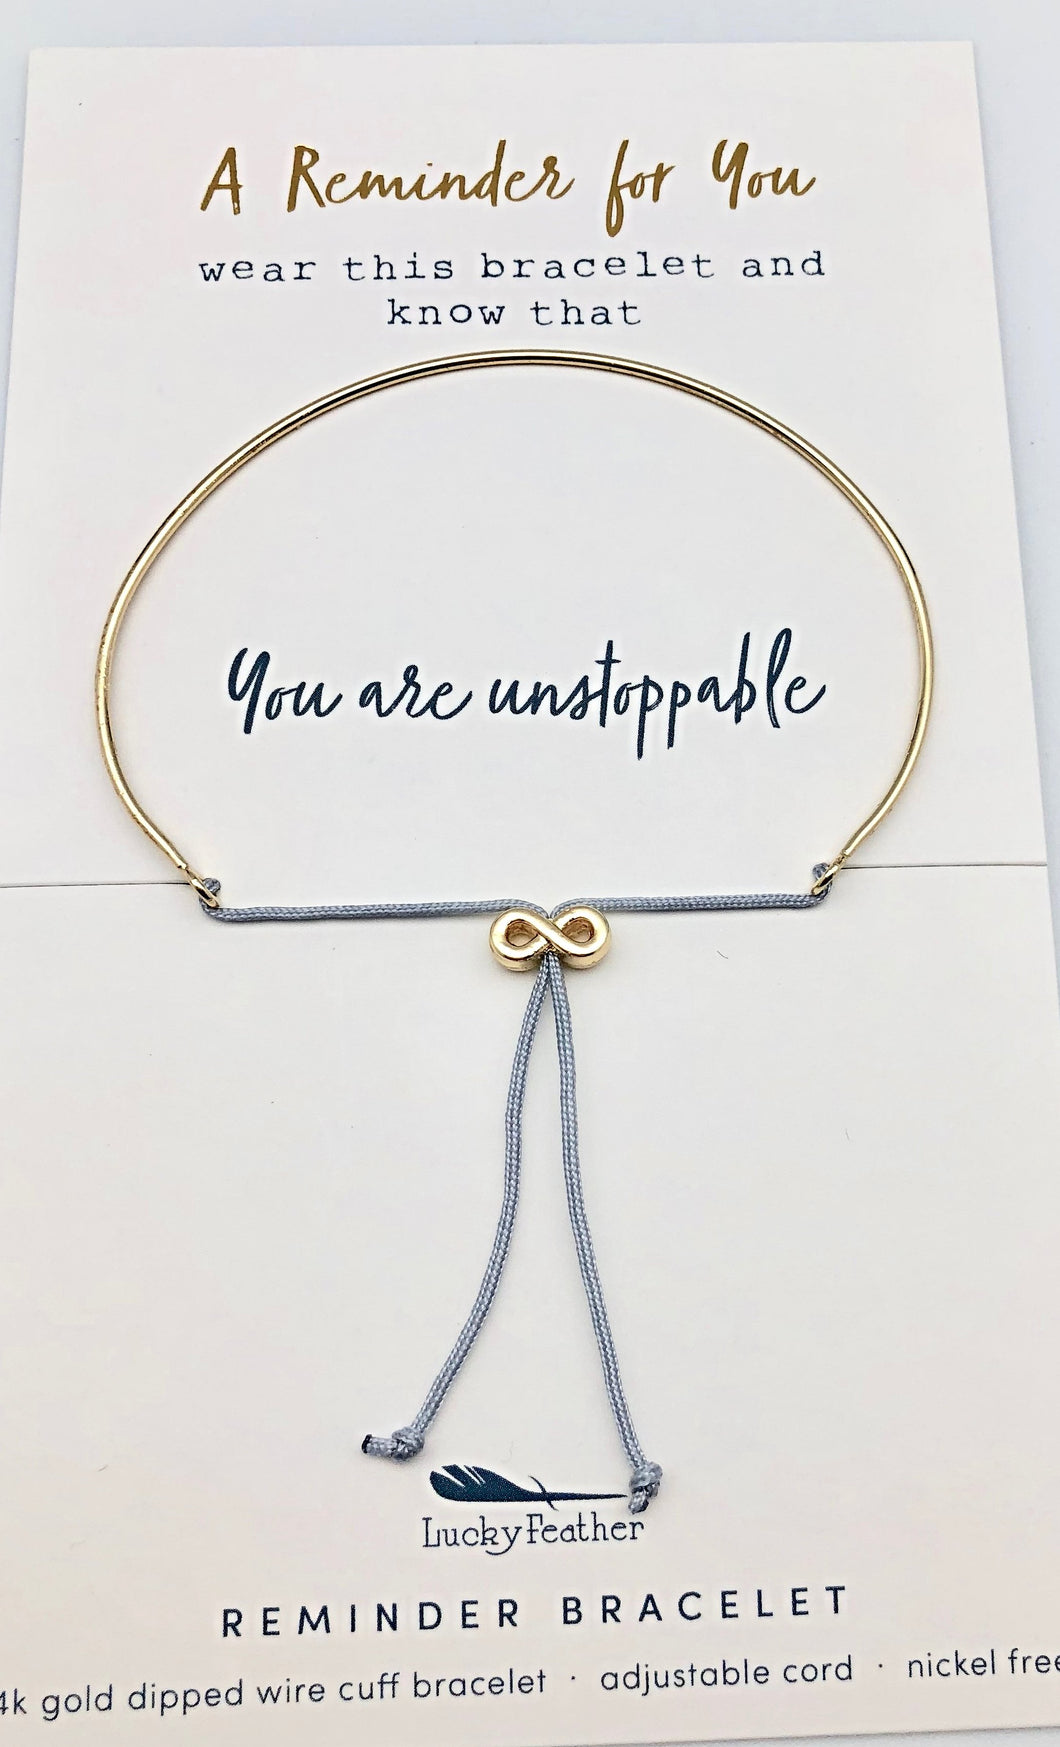 Lucky Feather Reminder Bracelet - You Are Unstoppable